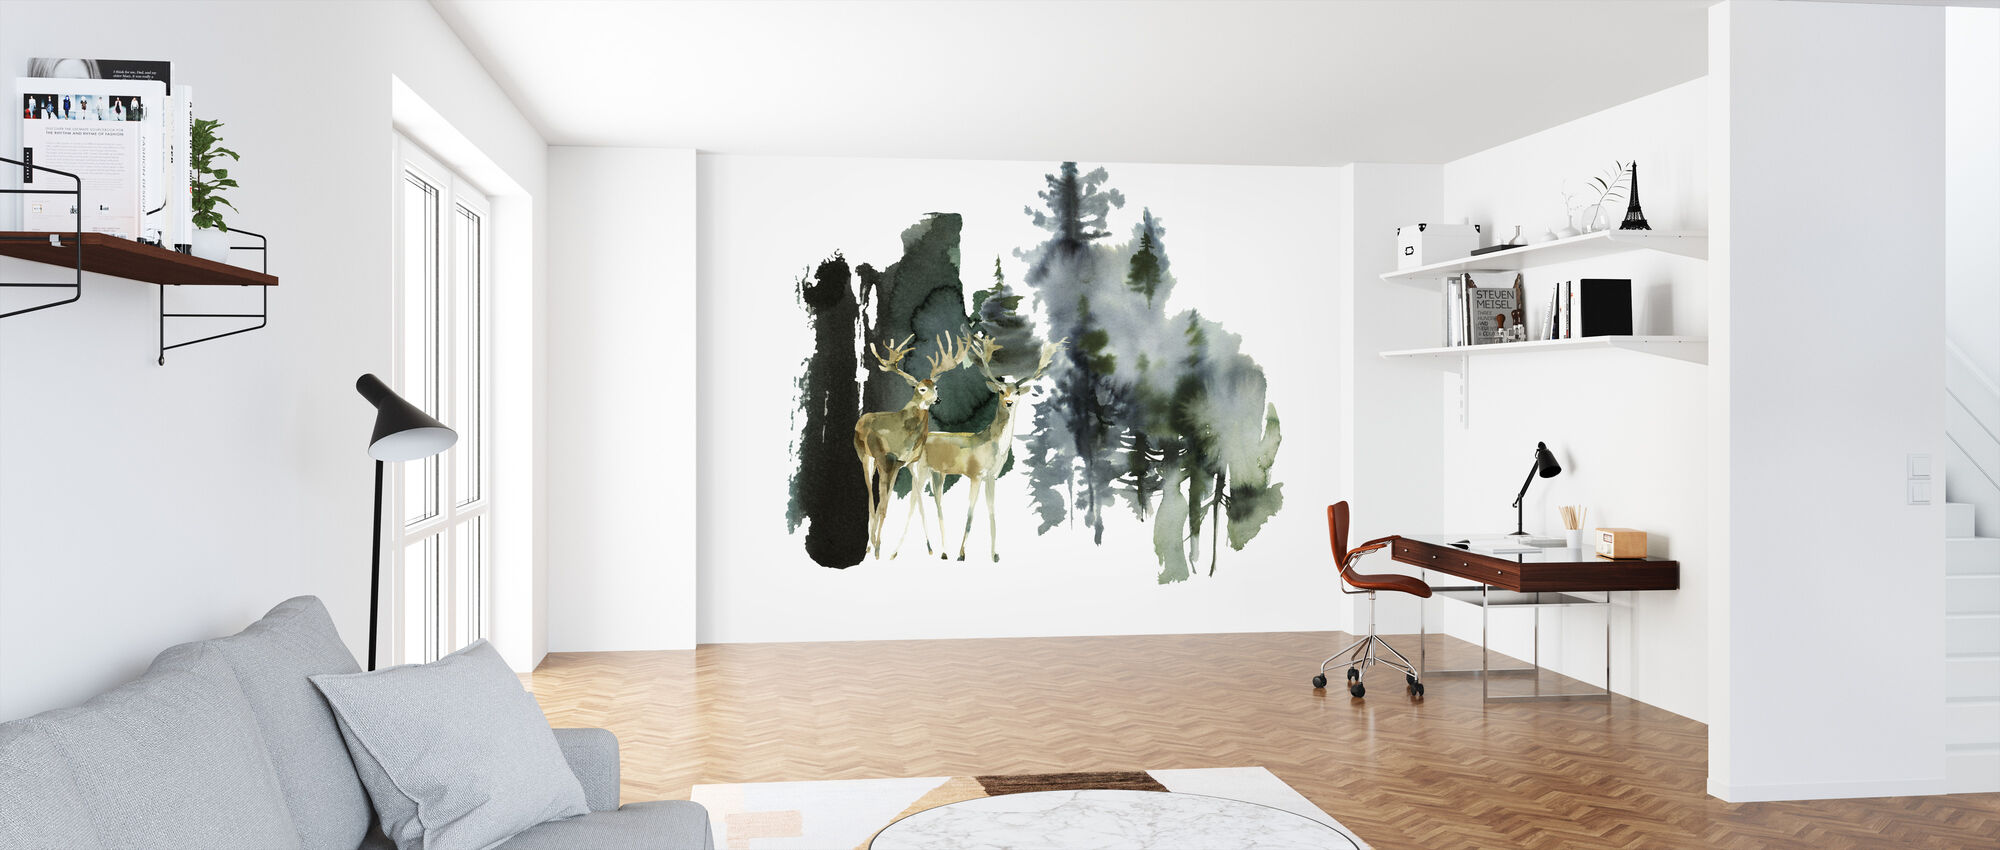 Watercolor Nature - Wallpaper - Office